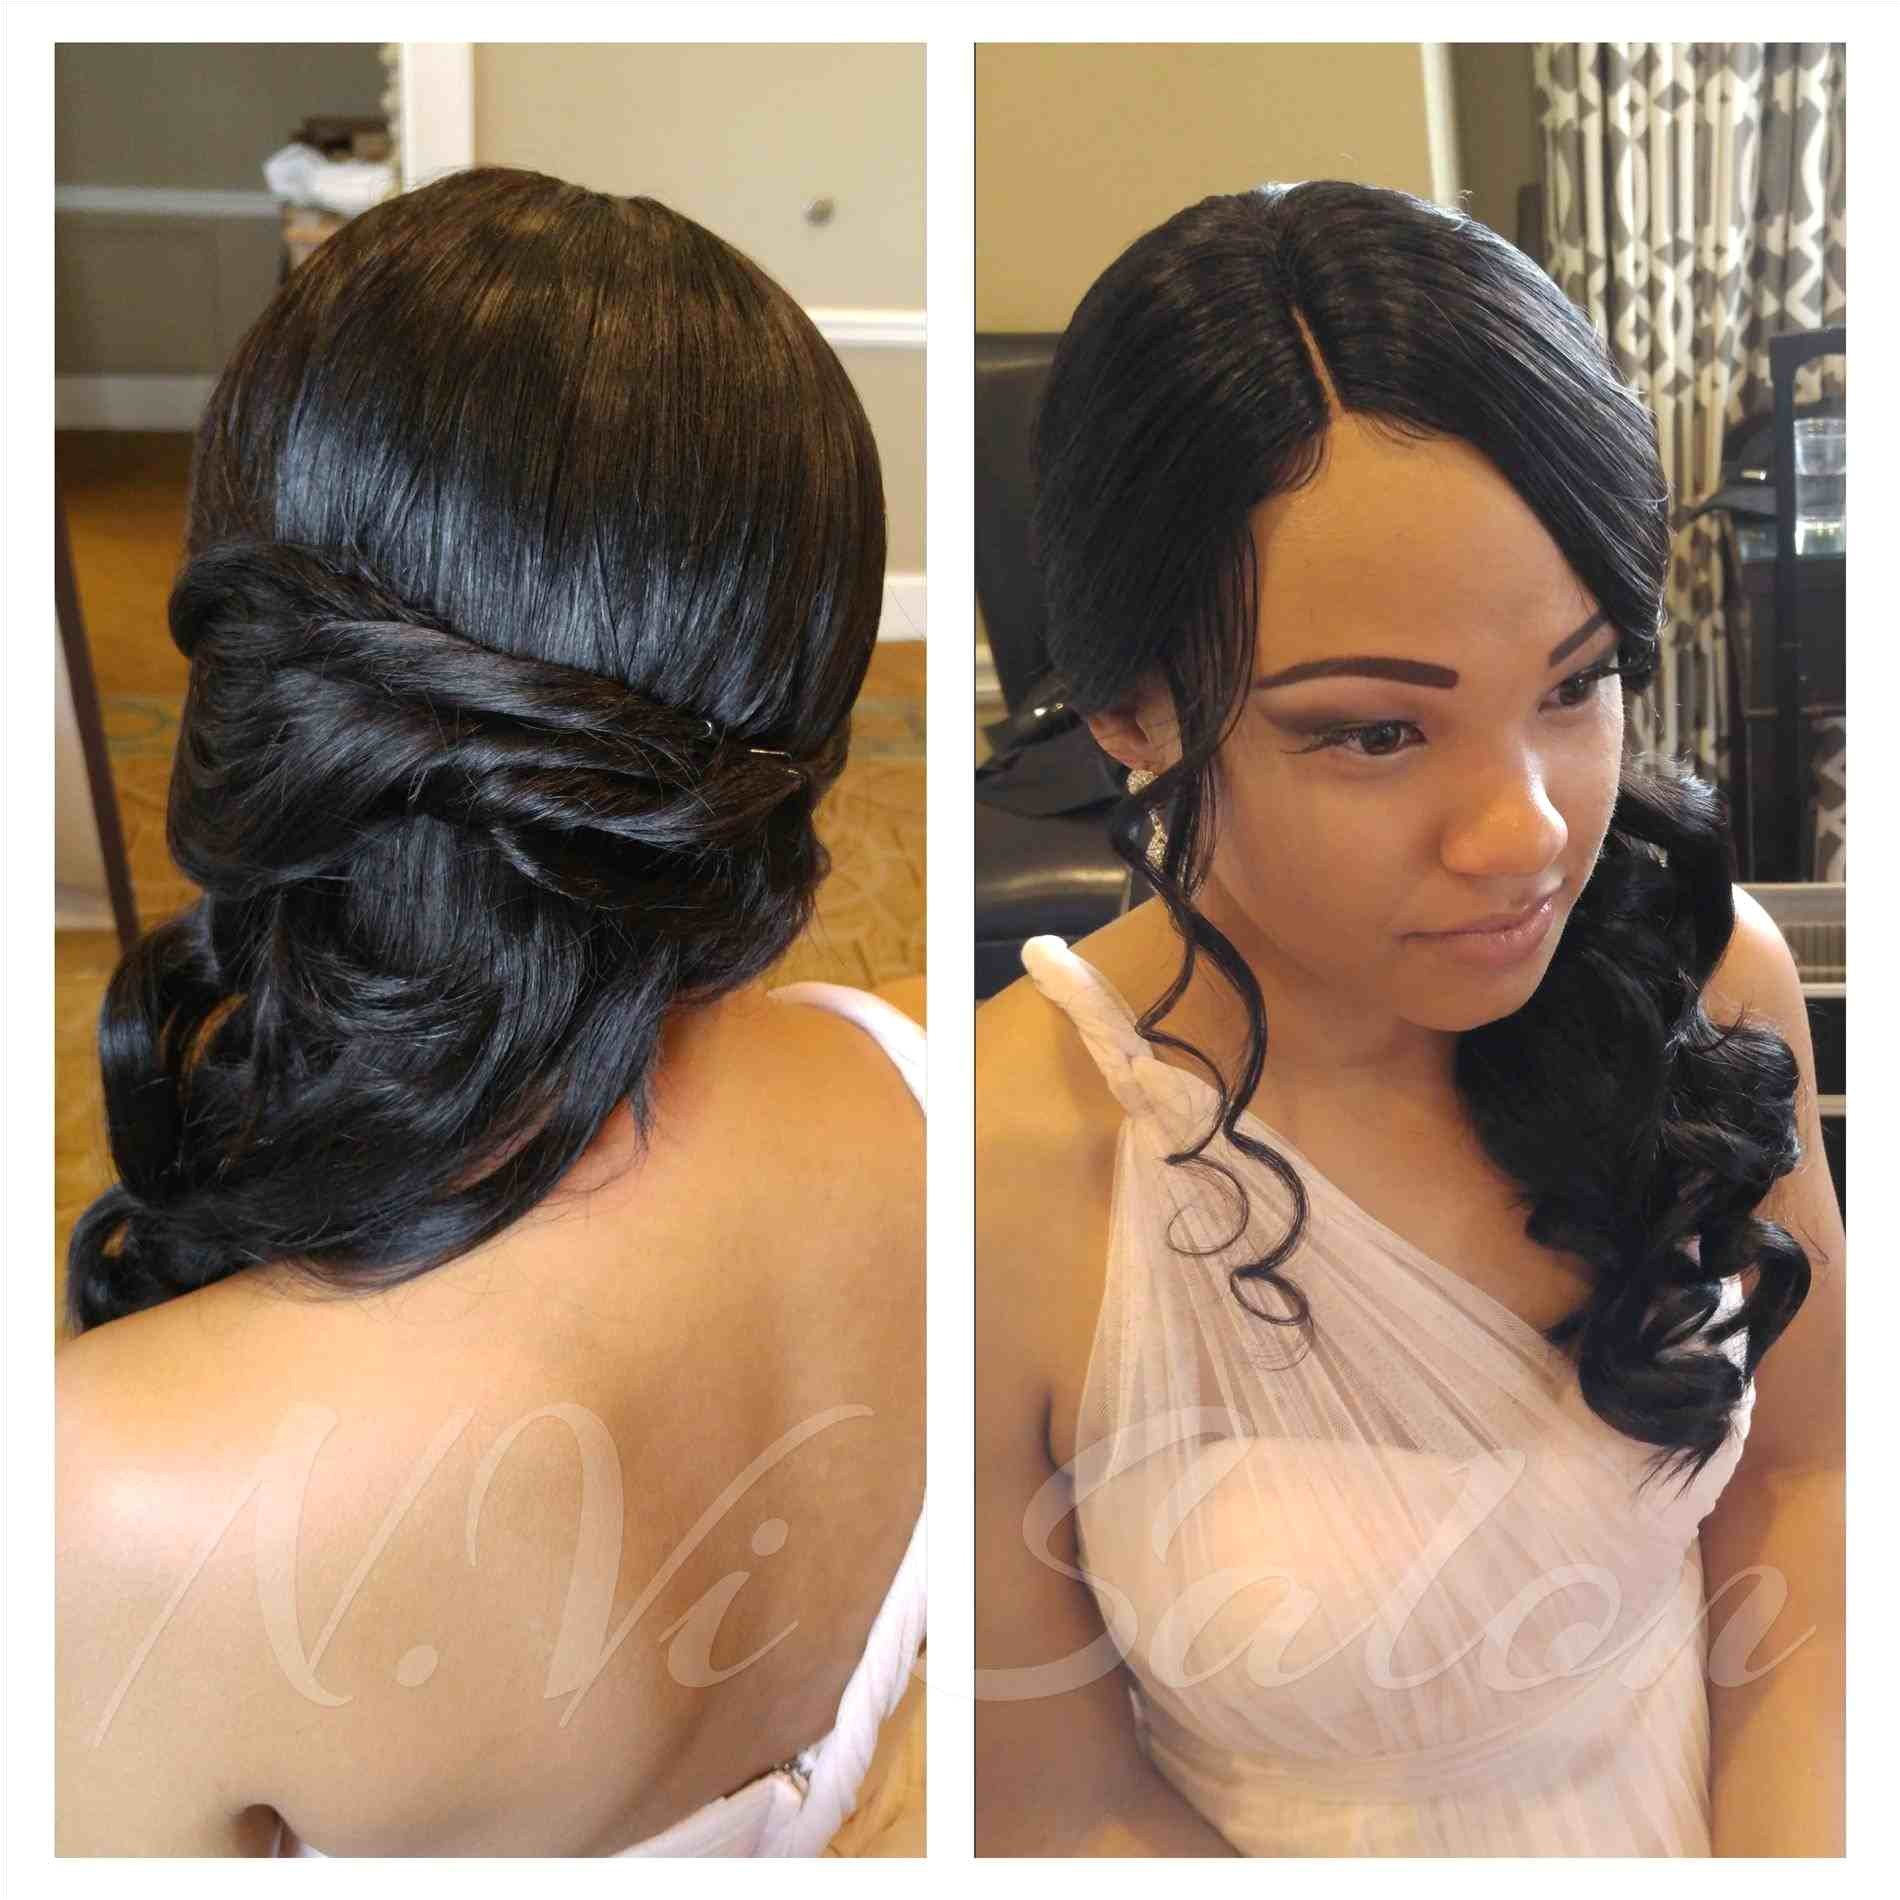 bun wedding hairstyles soft low bun updo bridal hair wedding weddings rhpinterest tag hairstyles for long hairstyle picture rhmamukis tag low